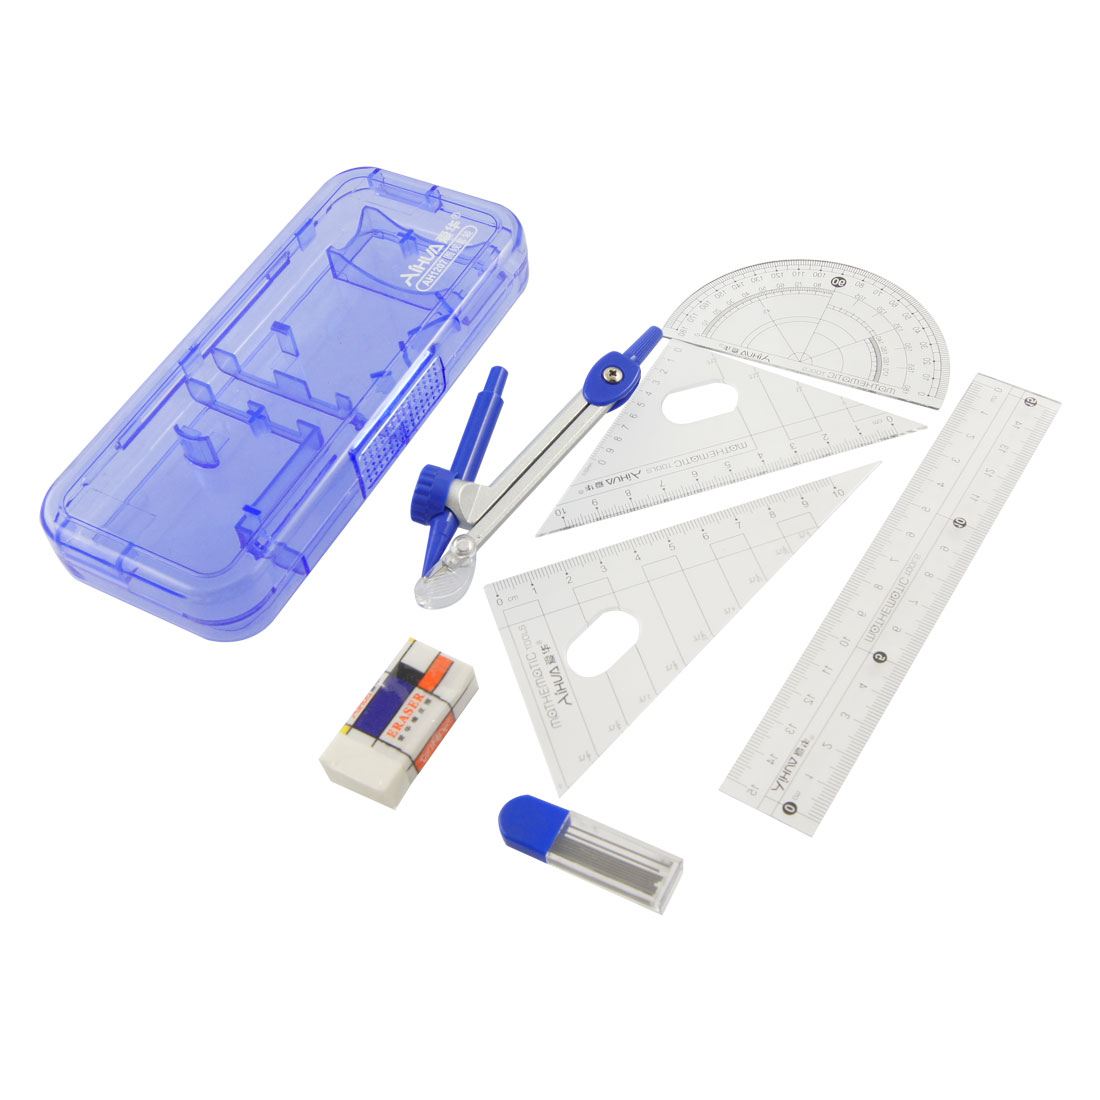 Ruler Eraser Drawing Compass Tool Clear Blue 7 in 1 Set for